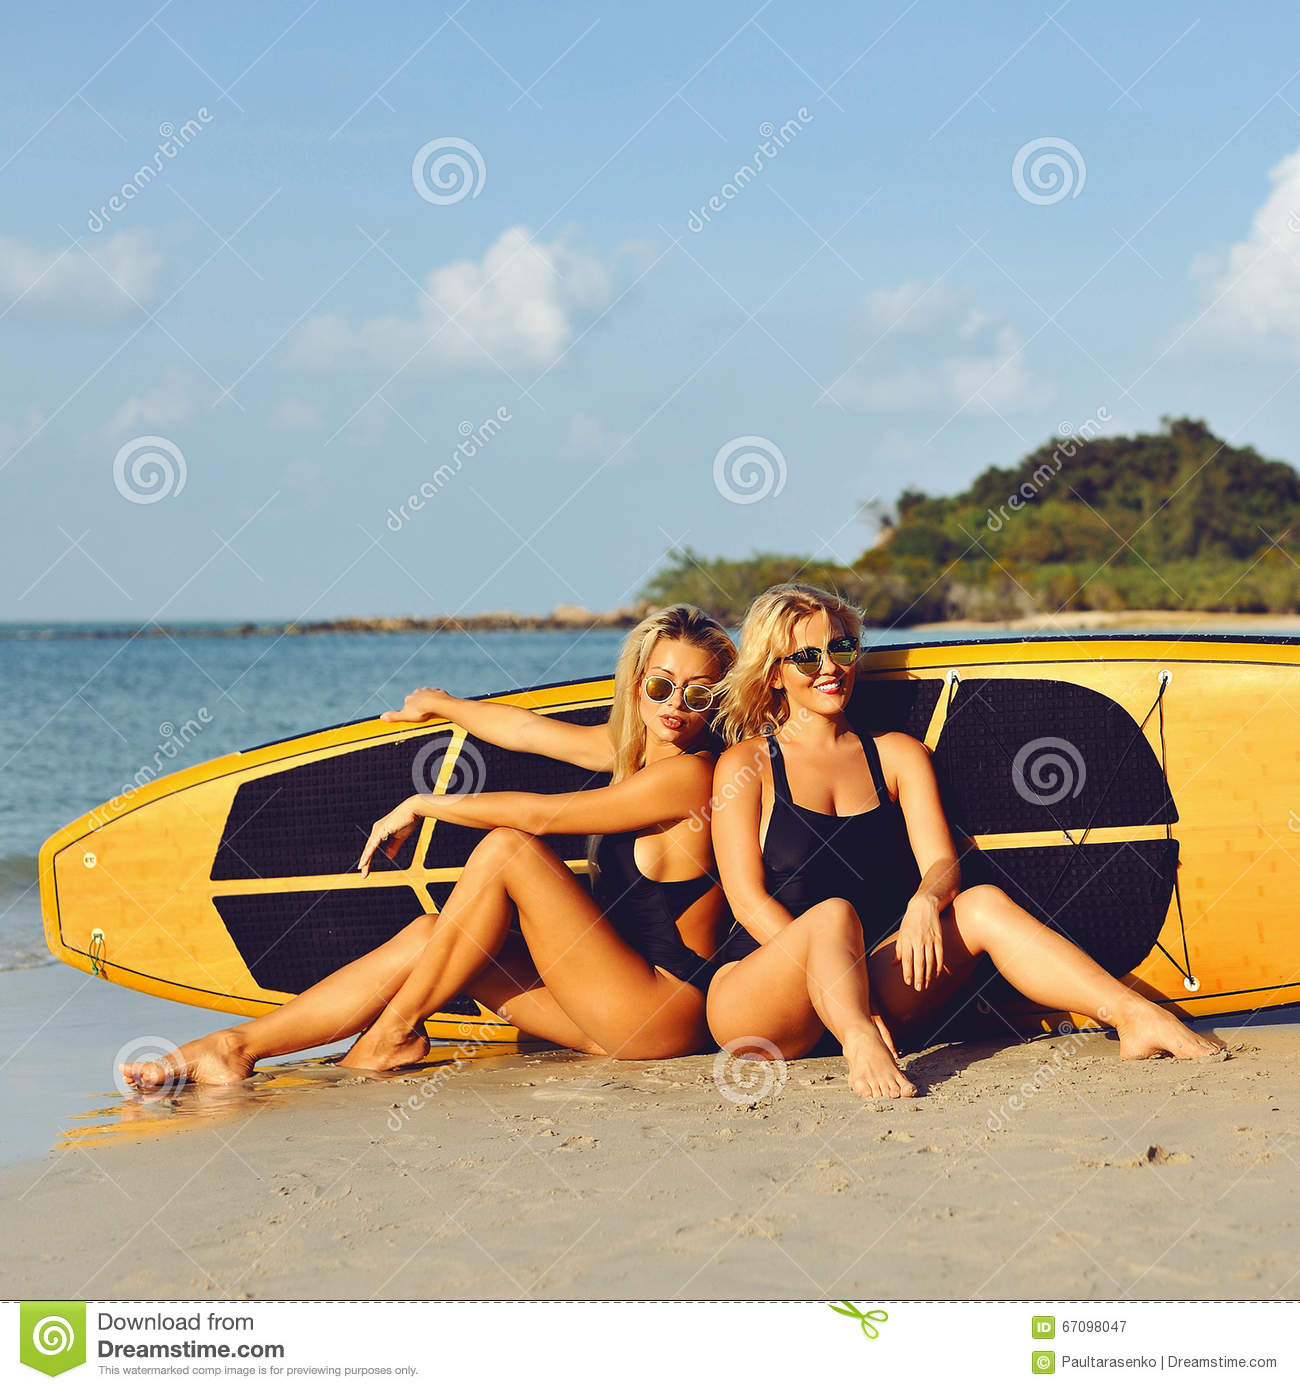 Surfer Girls Posing With Surfboard On A Beach Stock Image